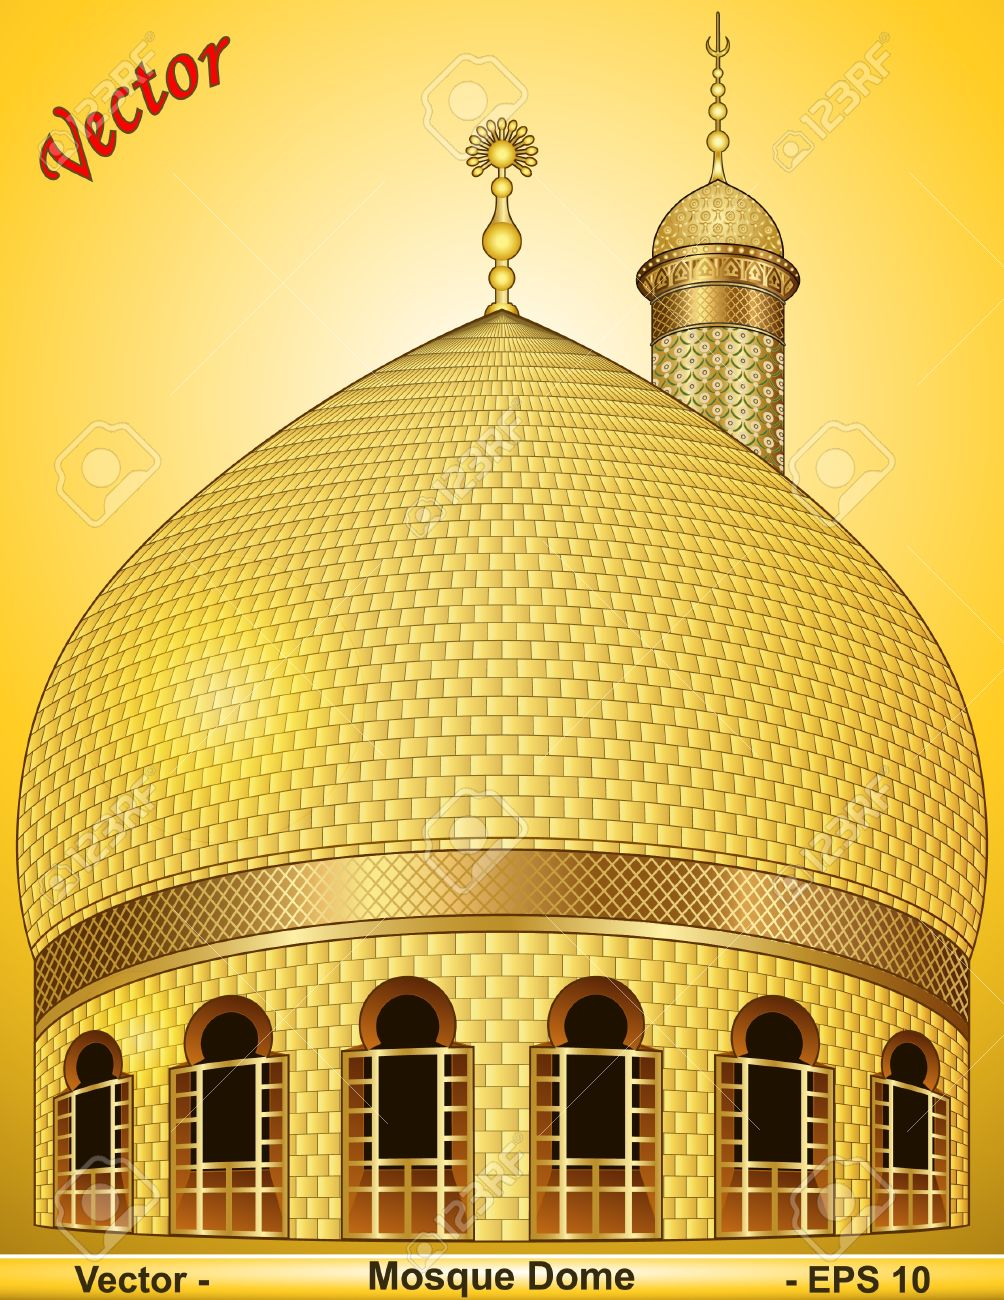 Mosque Dome Royalty Free Cliparts, Vectors, And Stock Illustration.